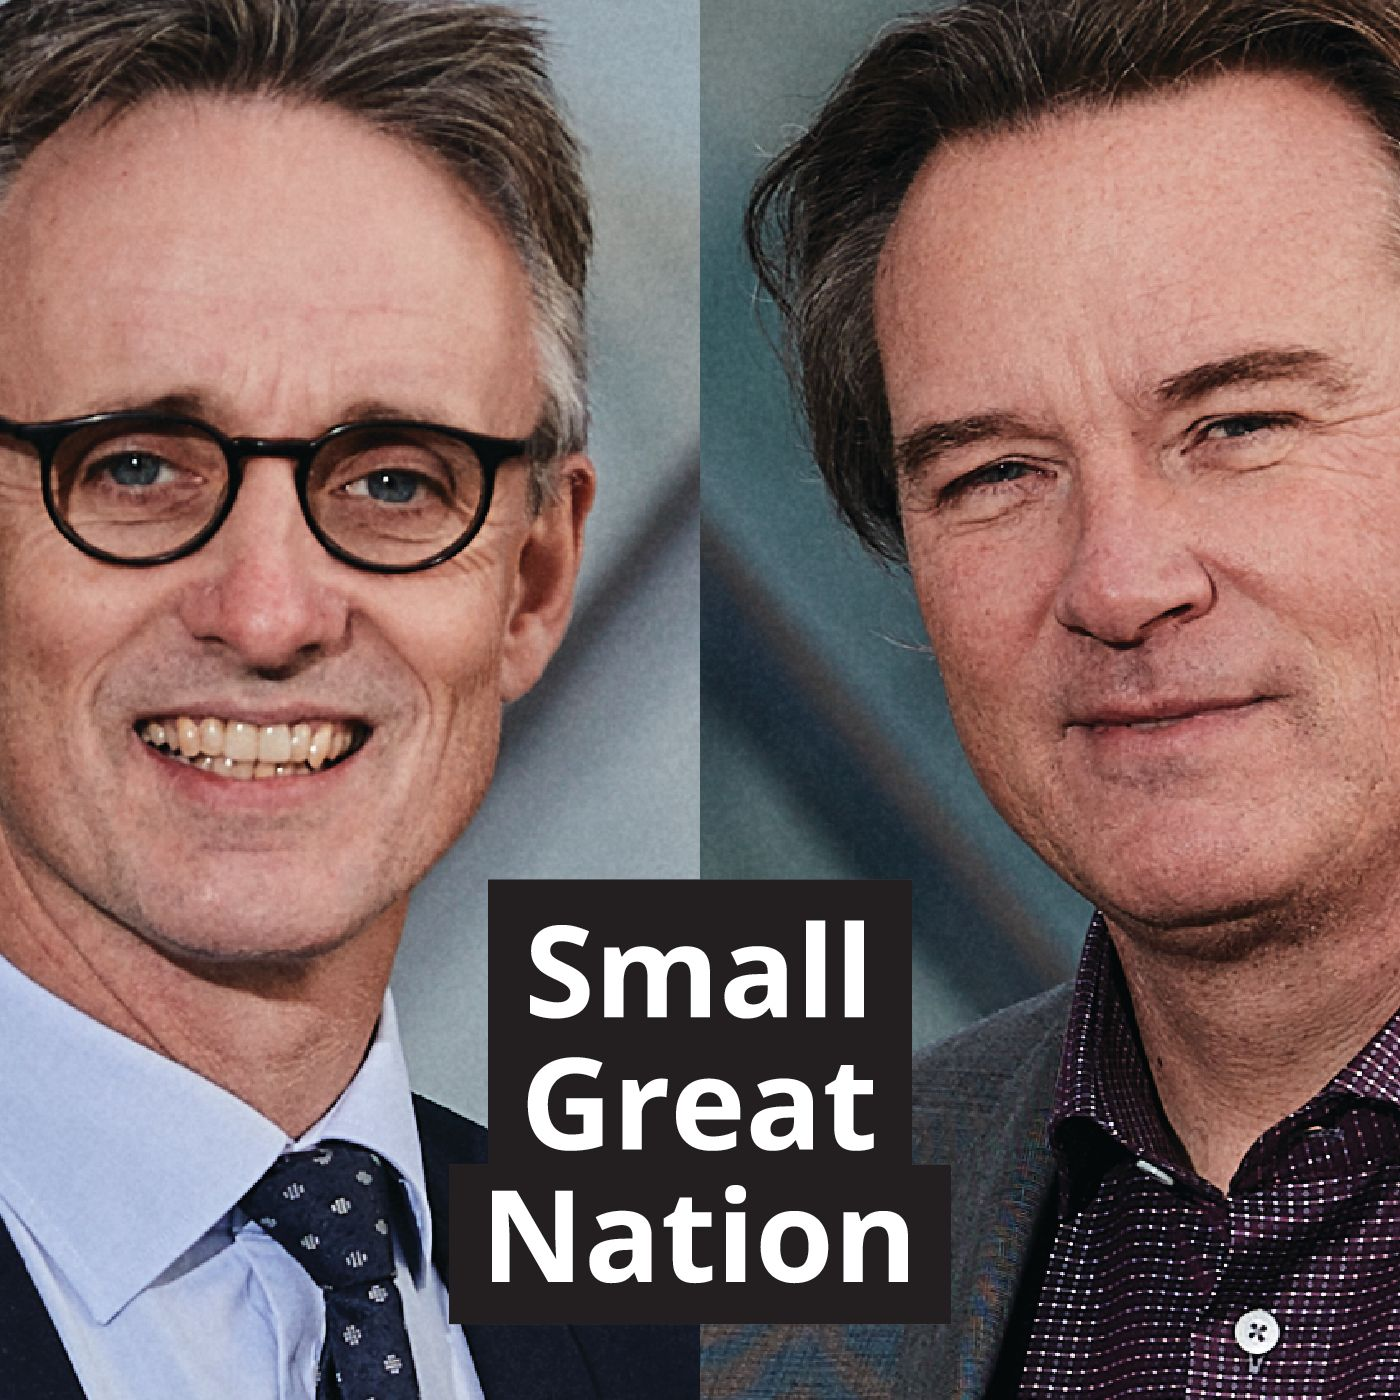 Small Great Nation